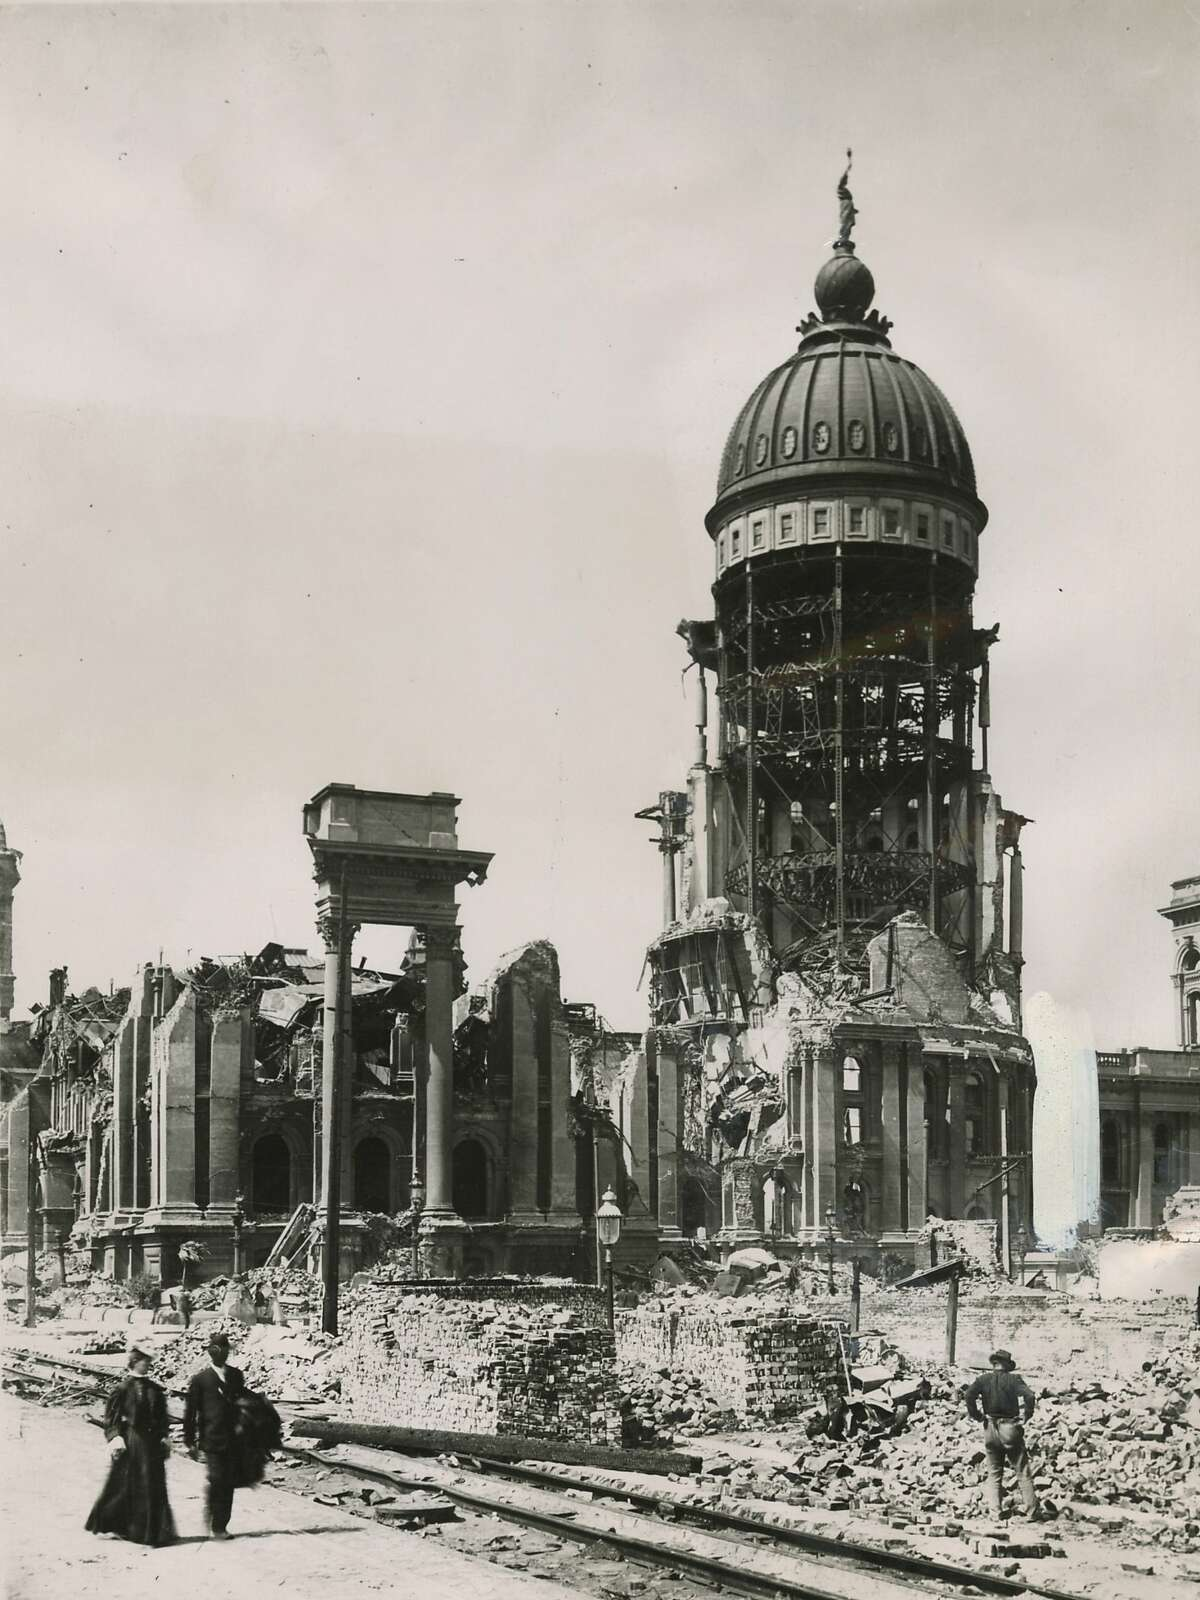 San Francisco City Hall in the aftermath of the 1906 earthquake and fire.